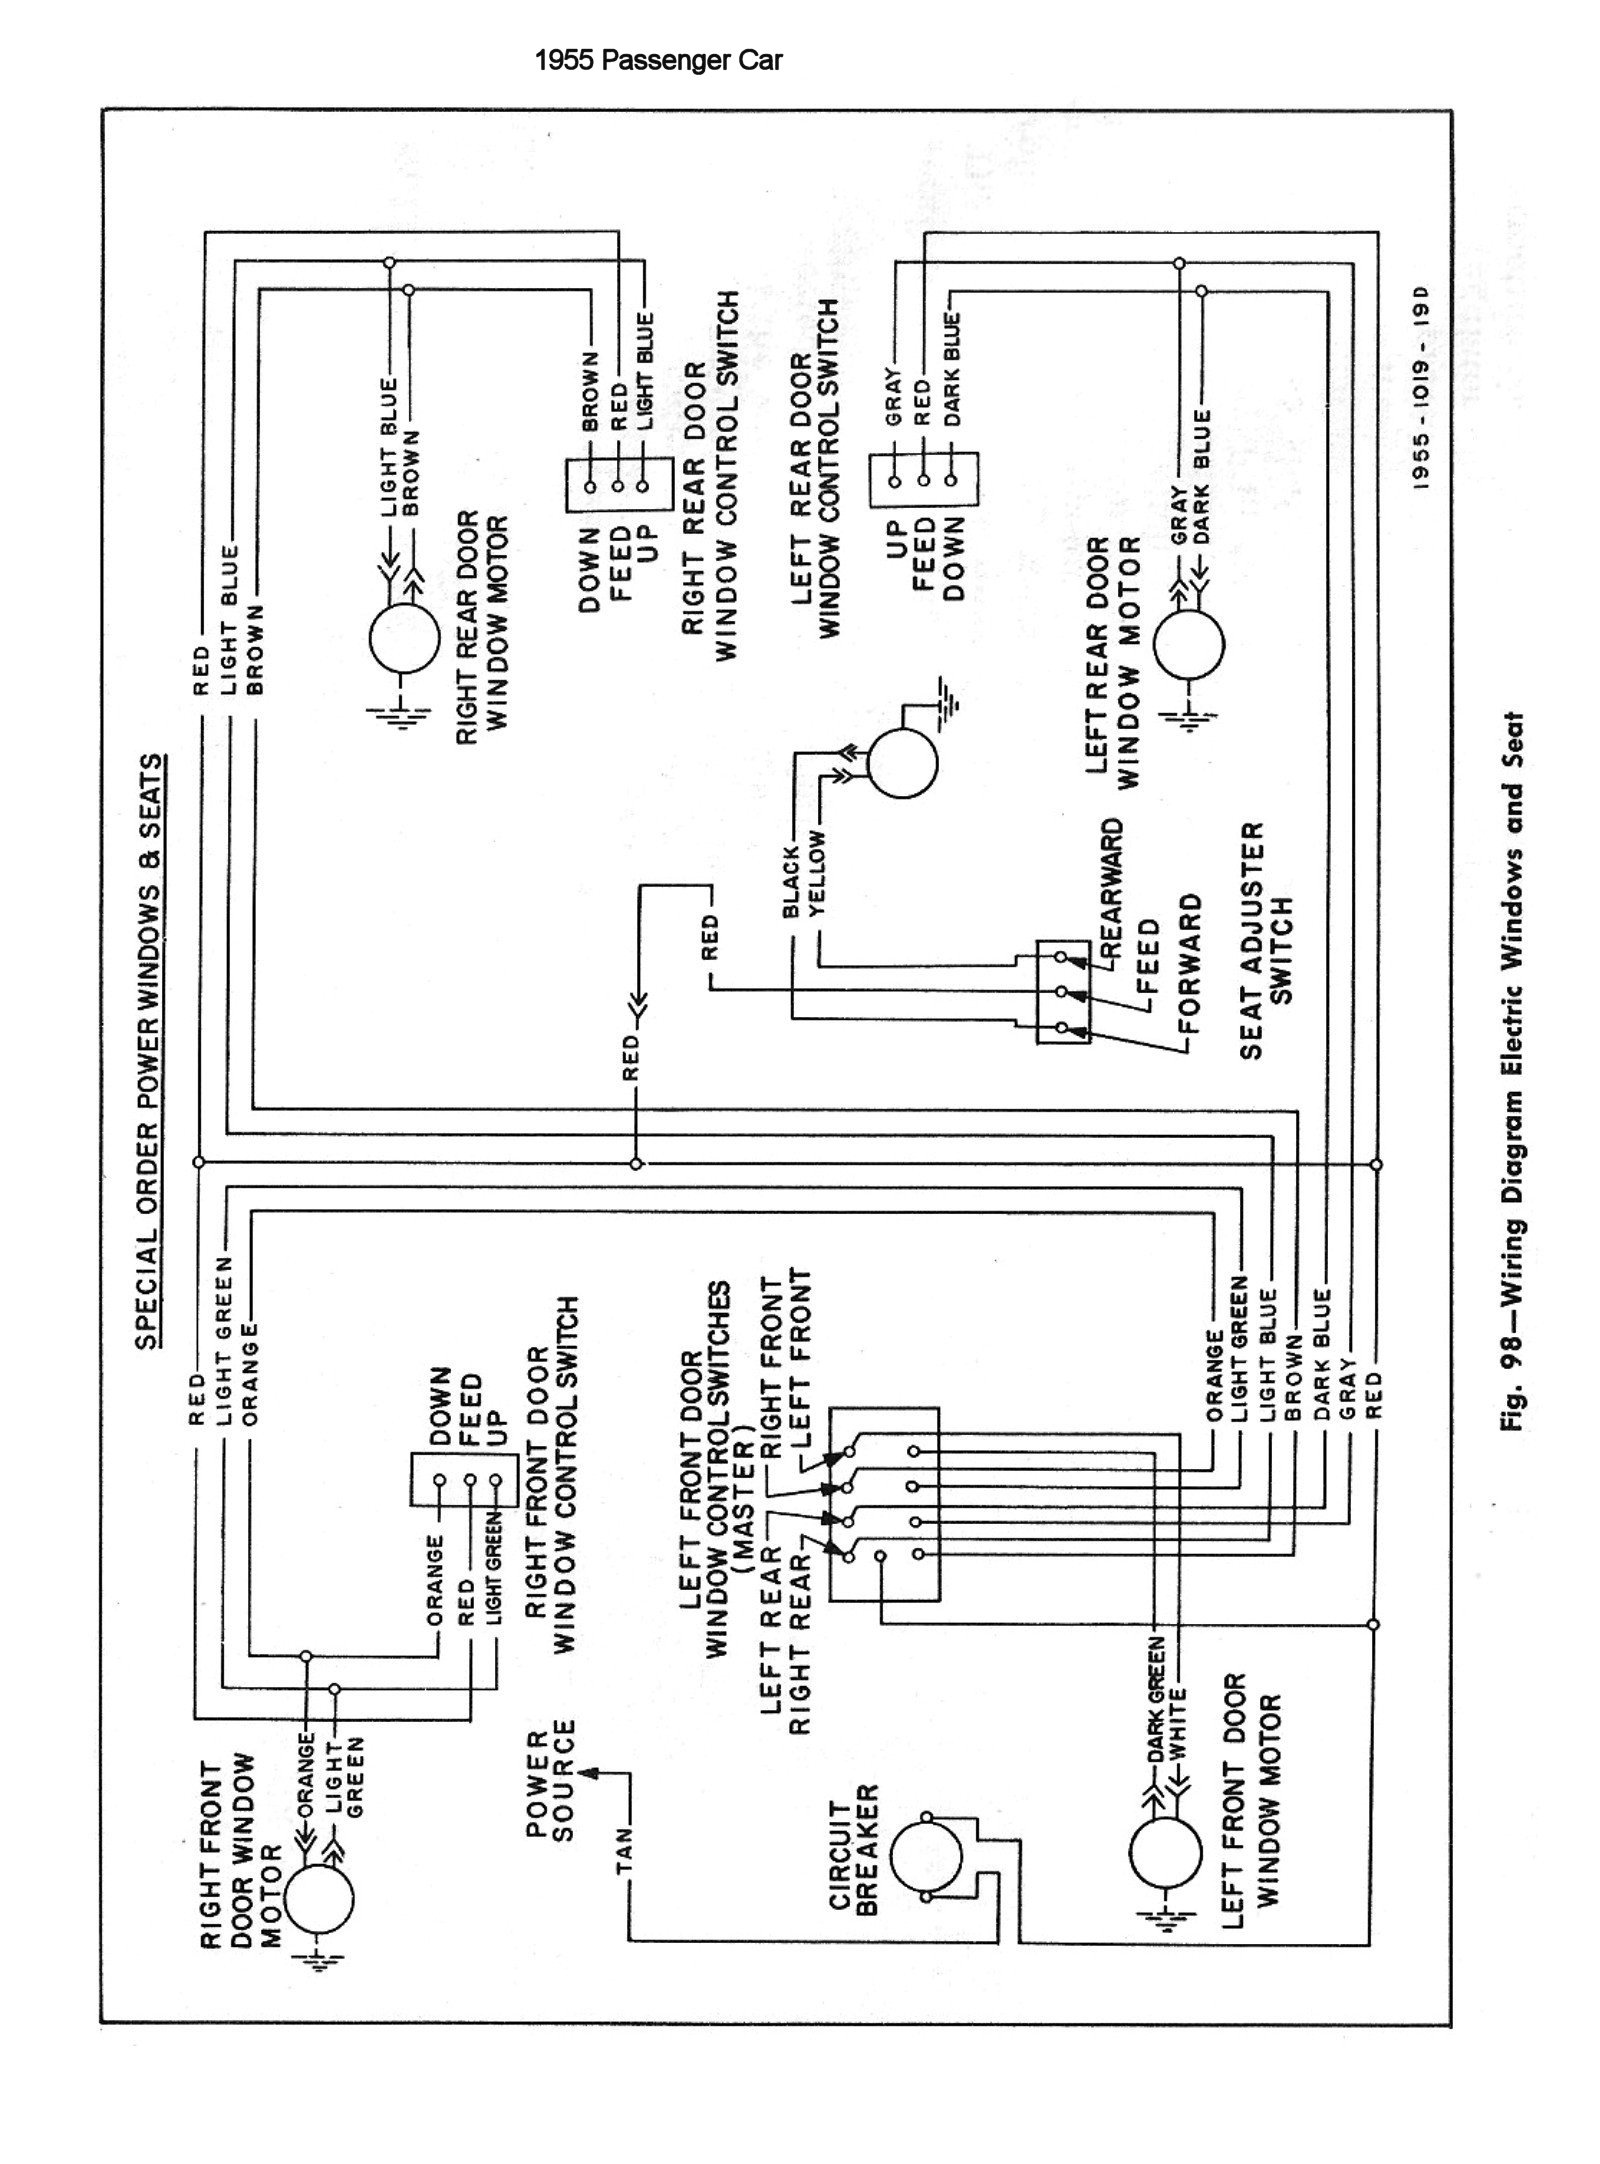 55csm0146 chevy wiring diagrams electric seat switch wiring diagram at panicattacktreatment.co